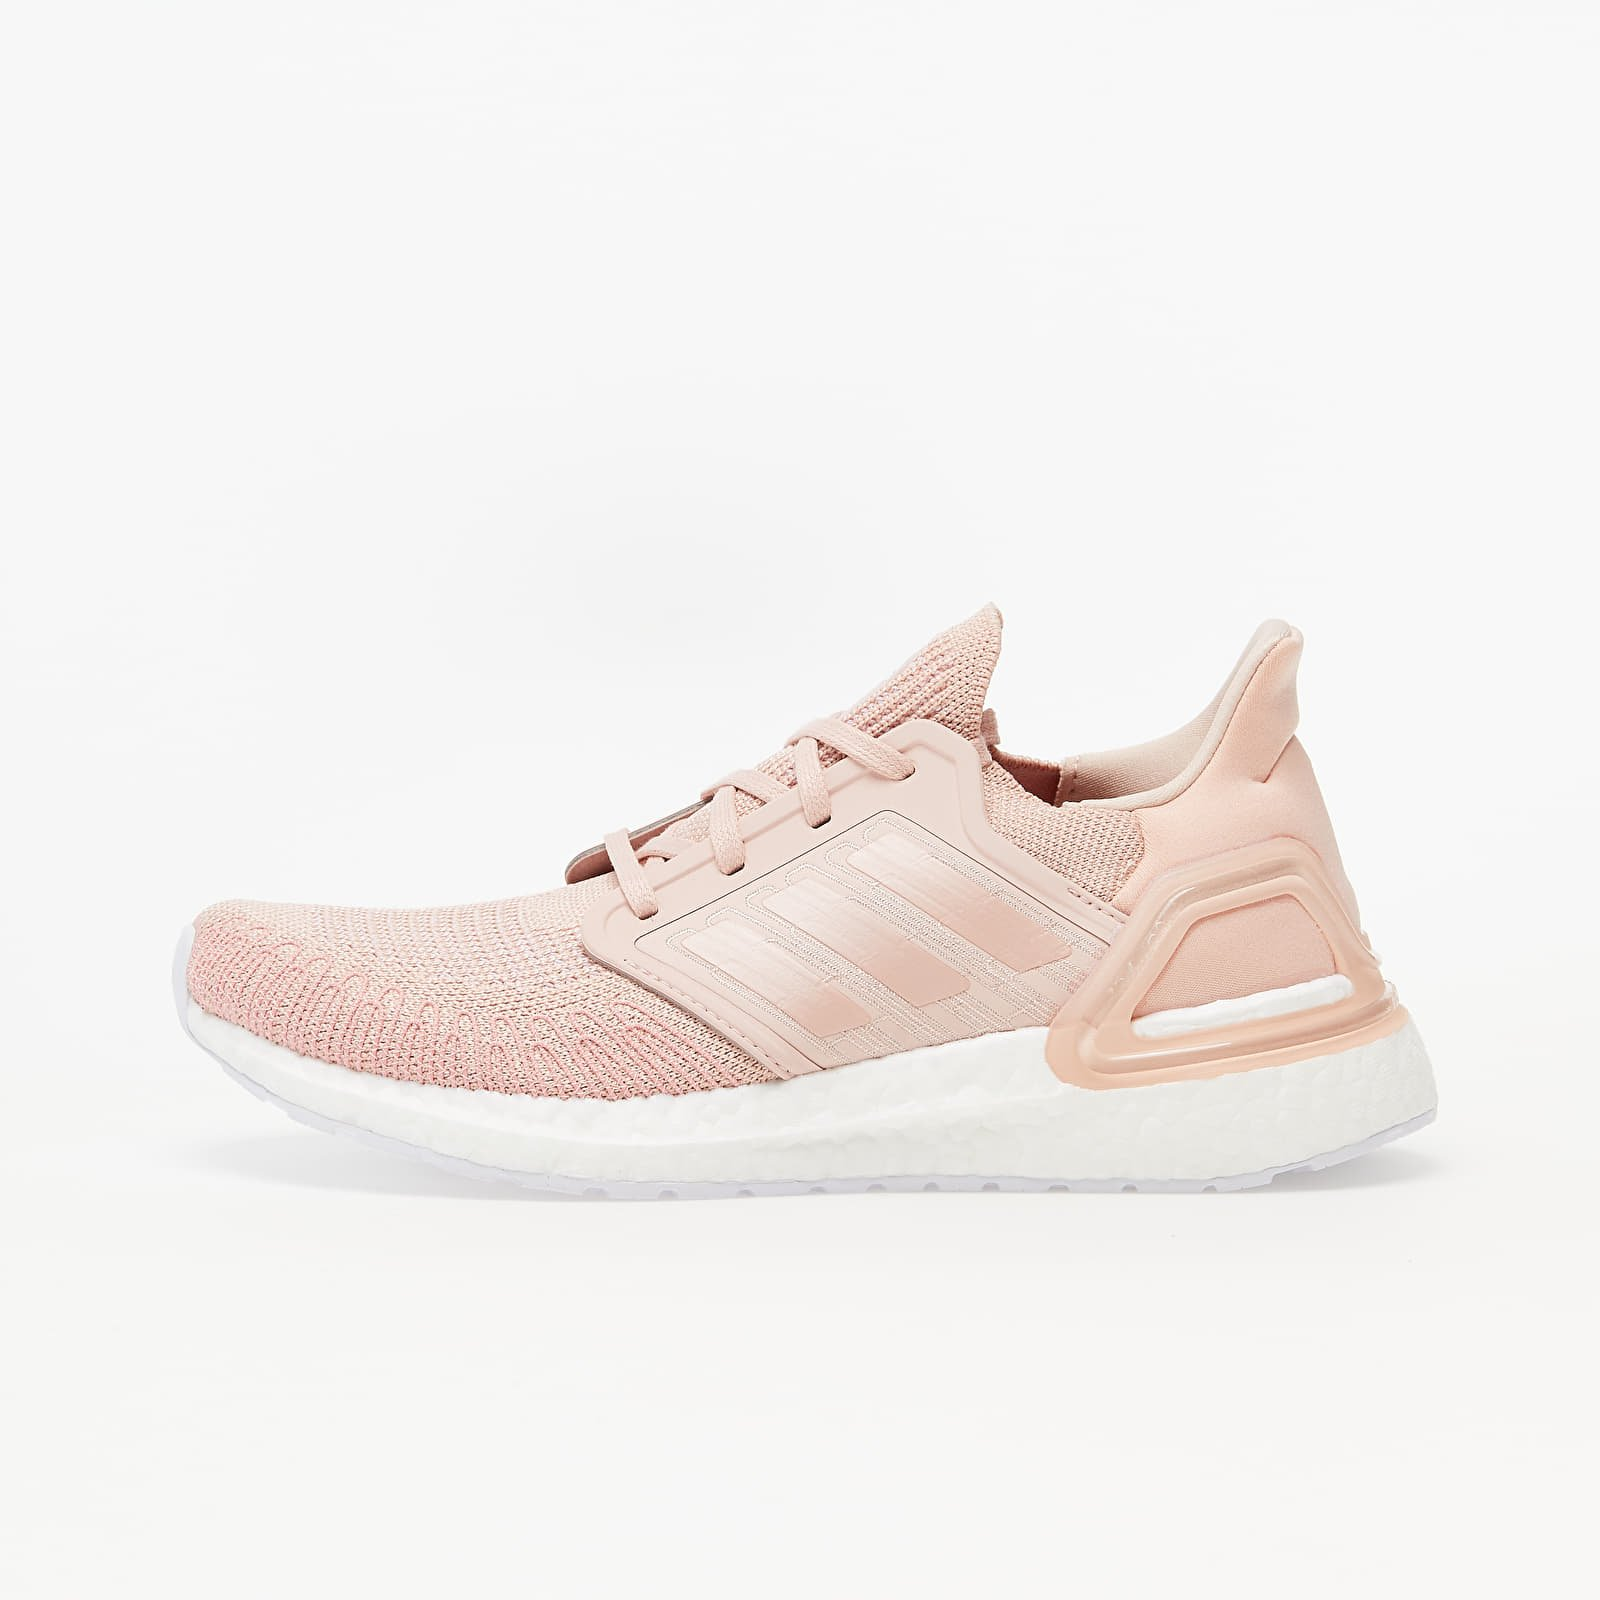 Women's shoes adidas UltraBOOST 20 W Vapour Pink/ Vapour Pink/ Ftw White